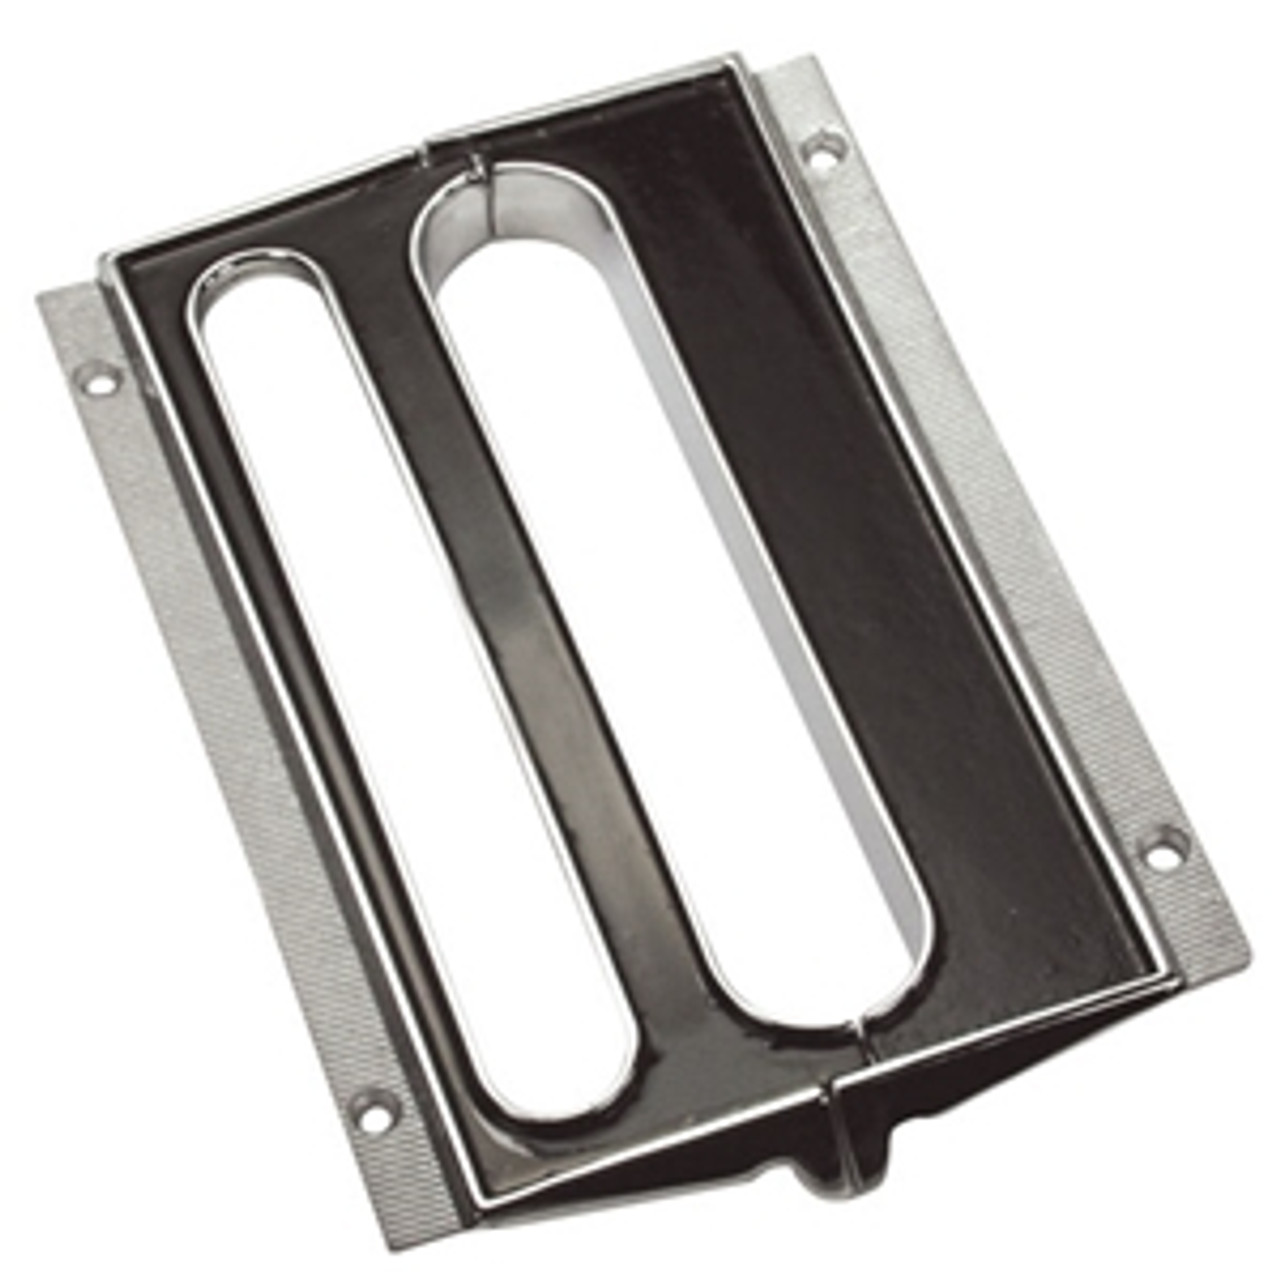 1965 Automatic Console Indicator Insert Plate (2 piece)